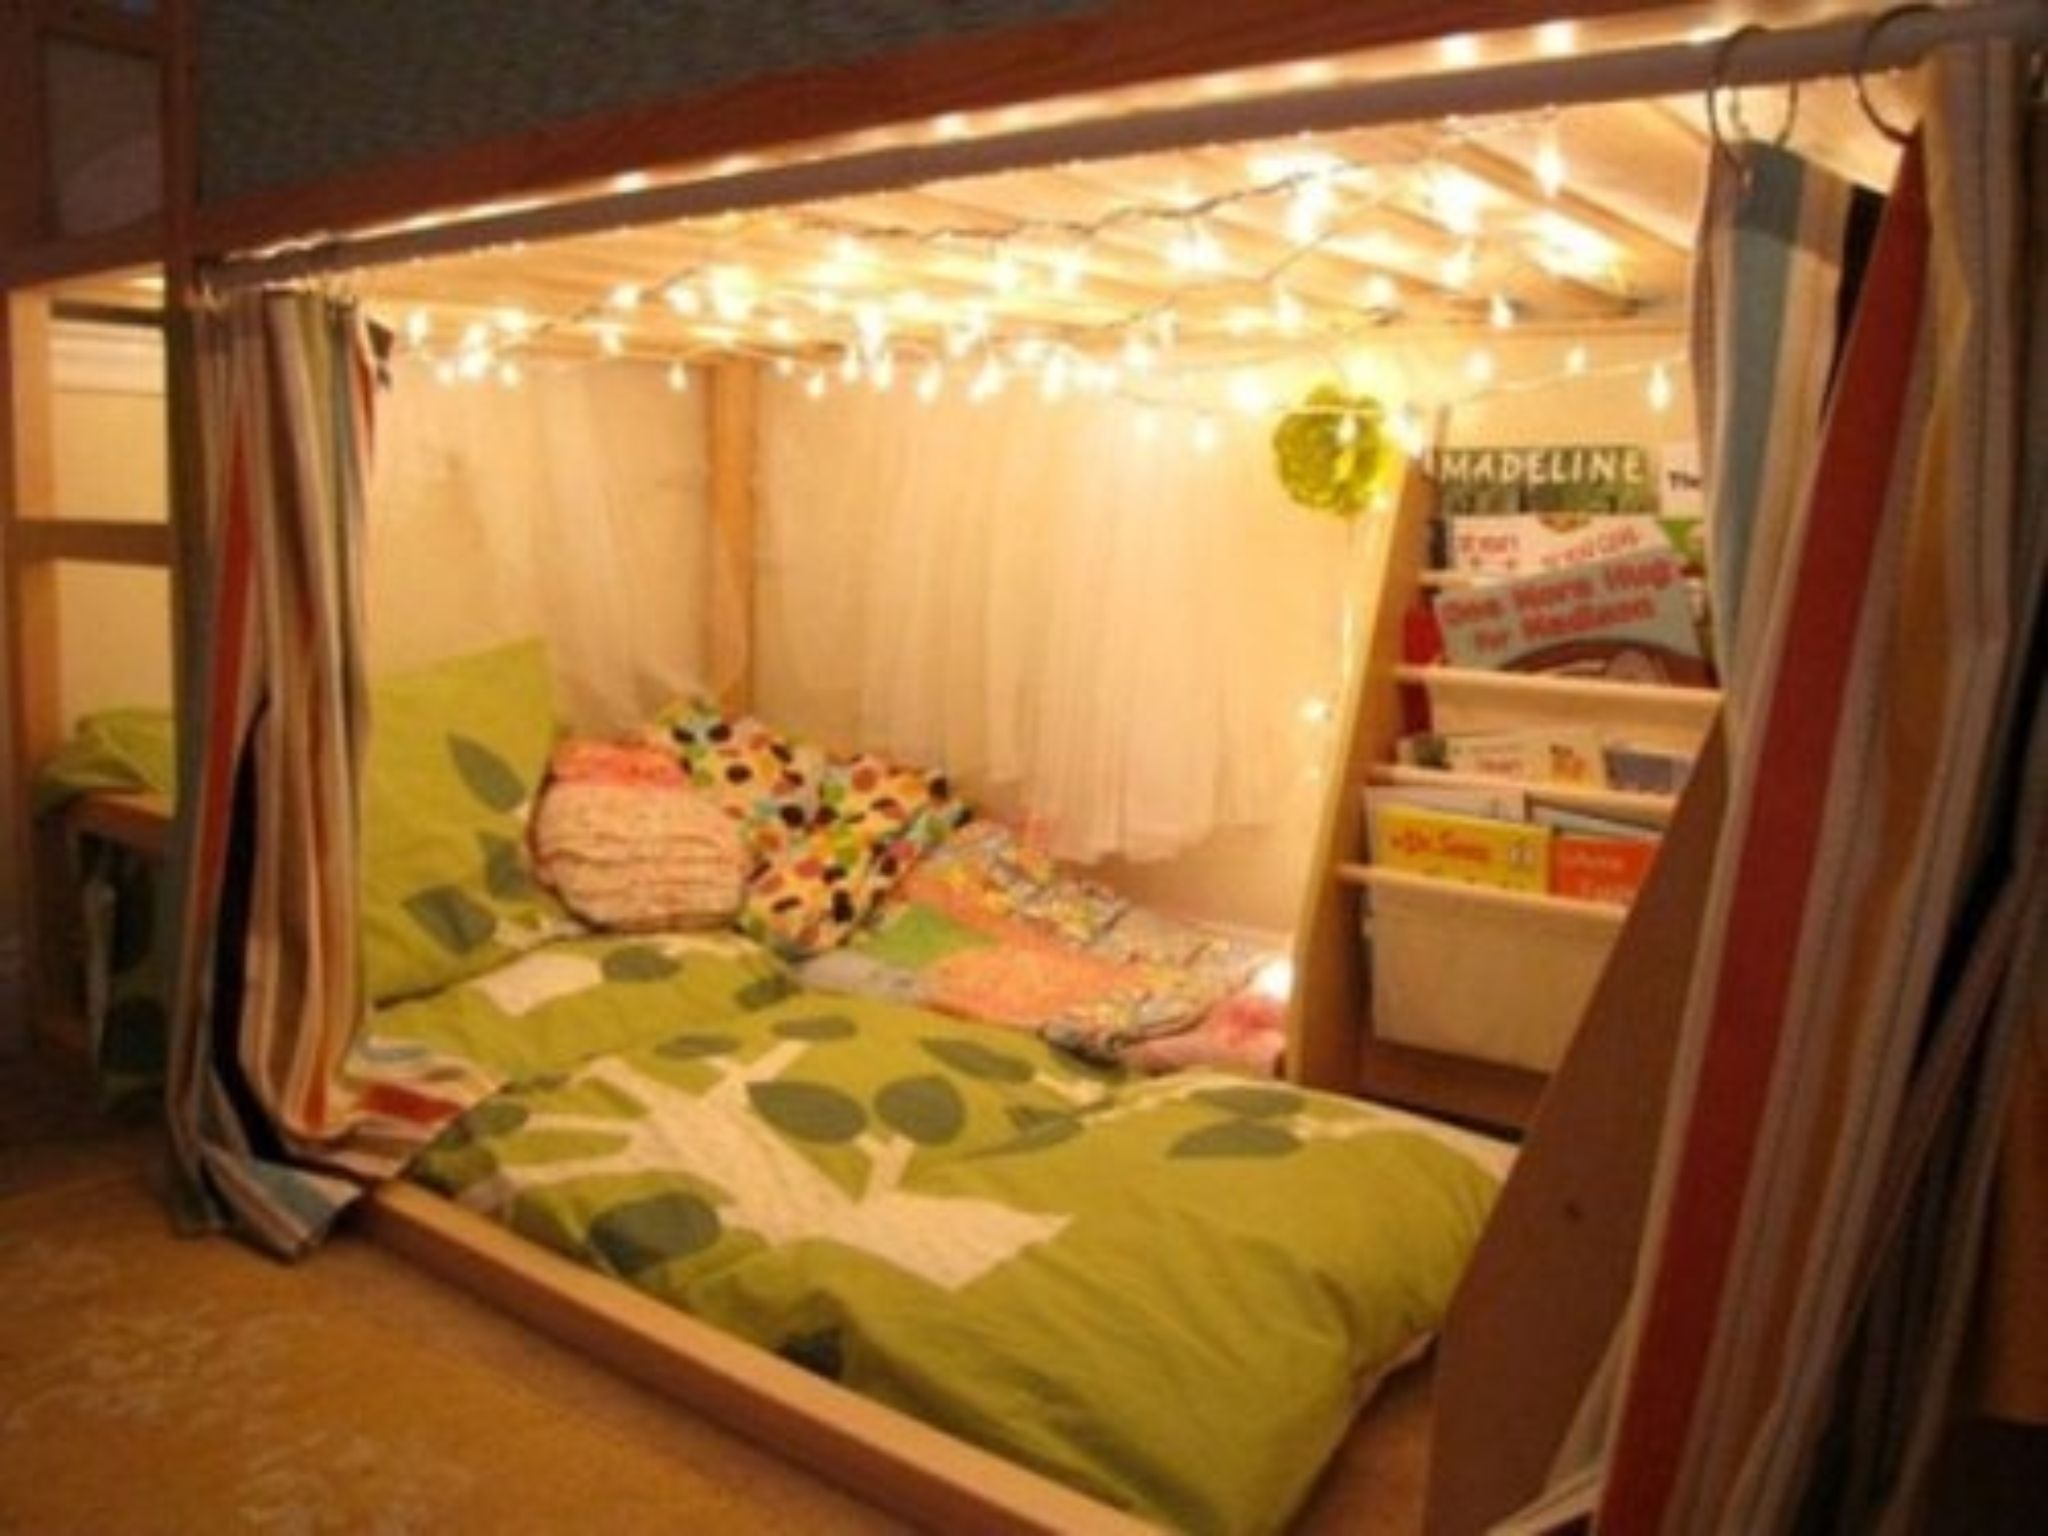 Pin By Celeste Sargent On Kid Stuff Home Home Decor House